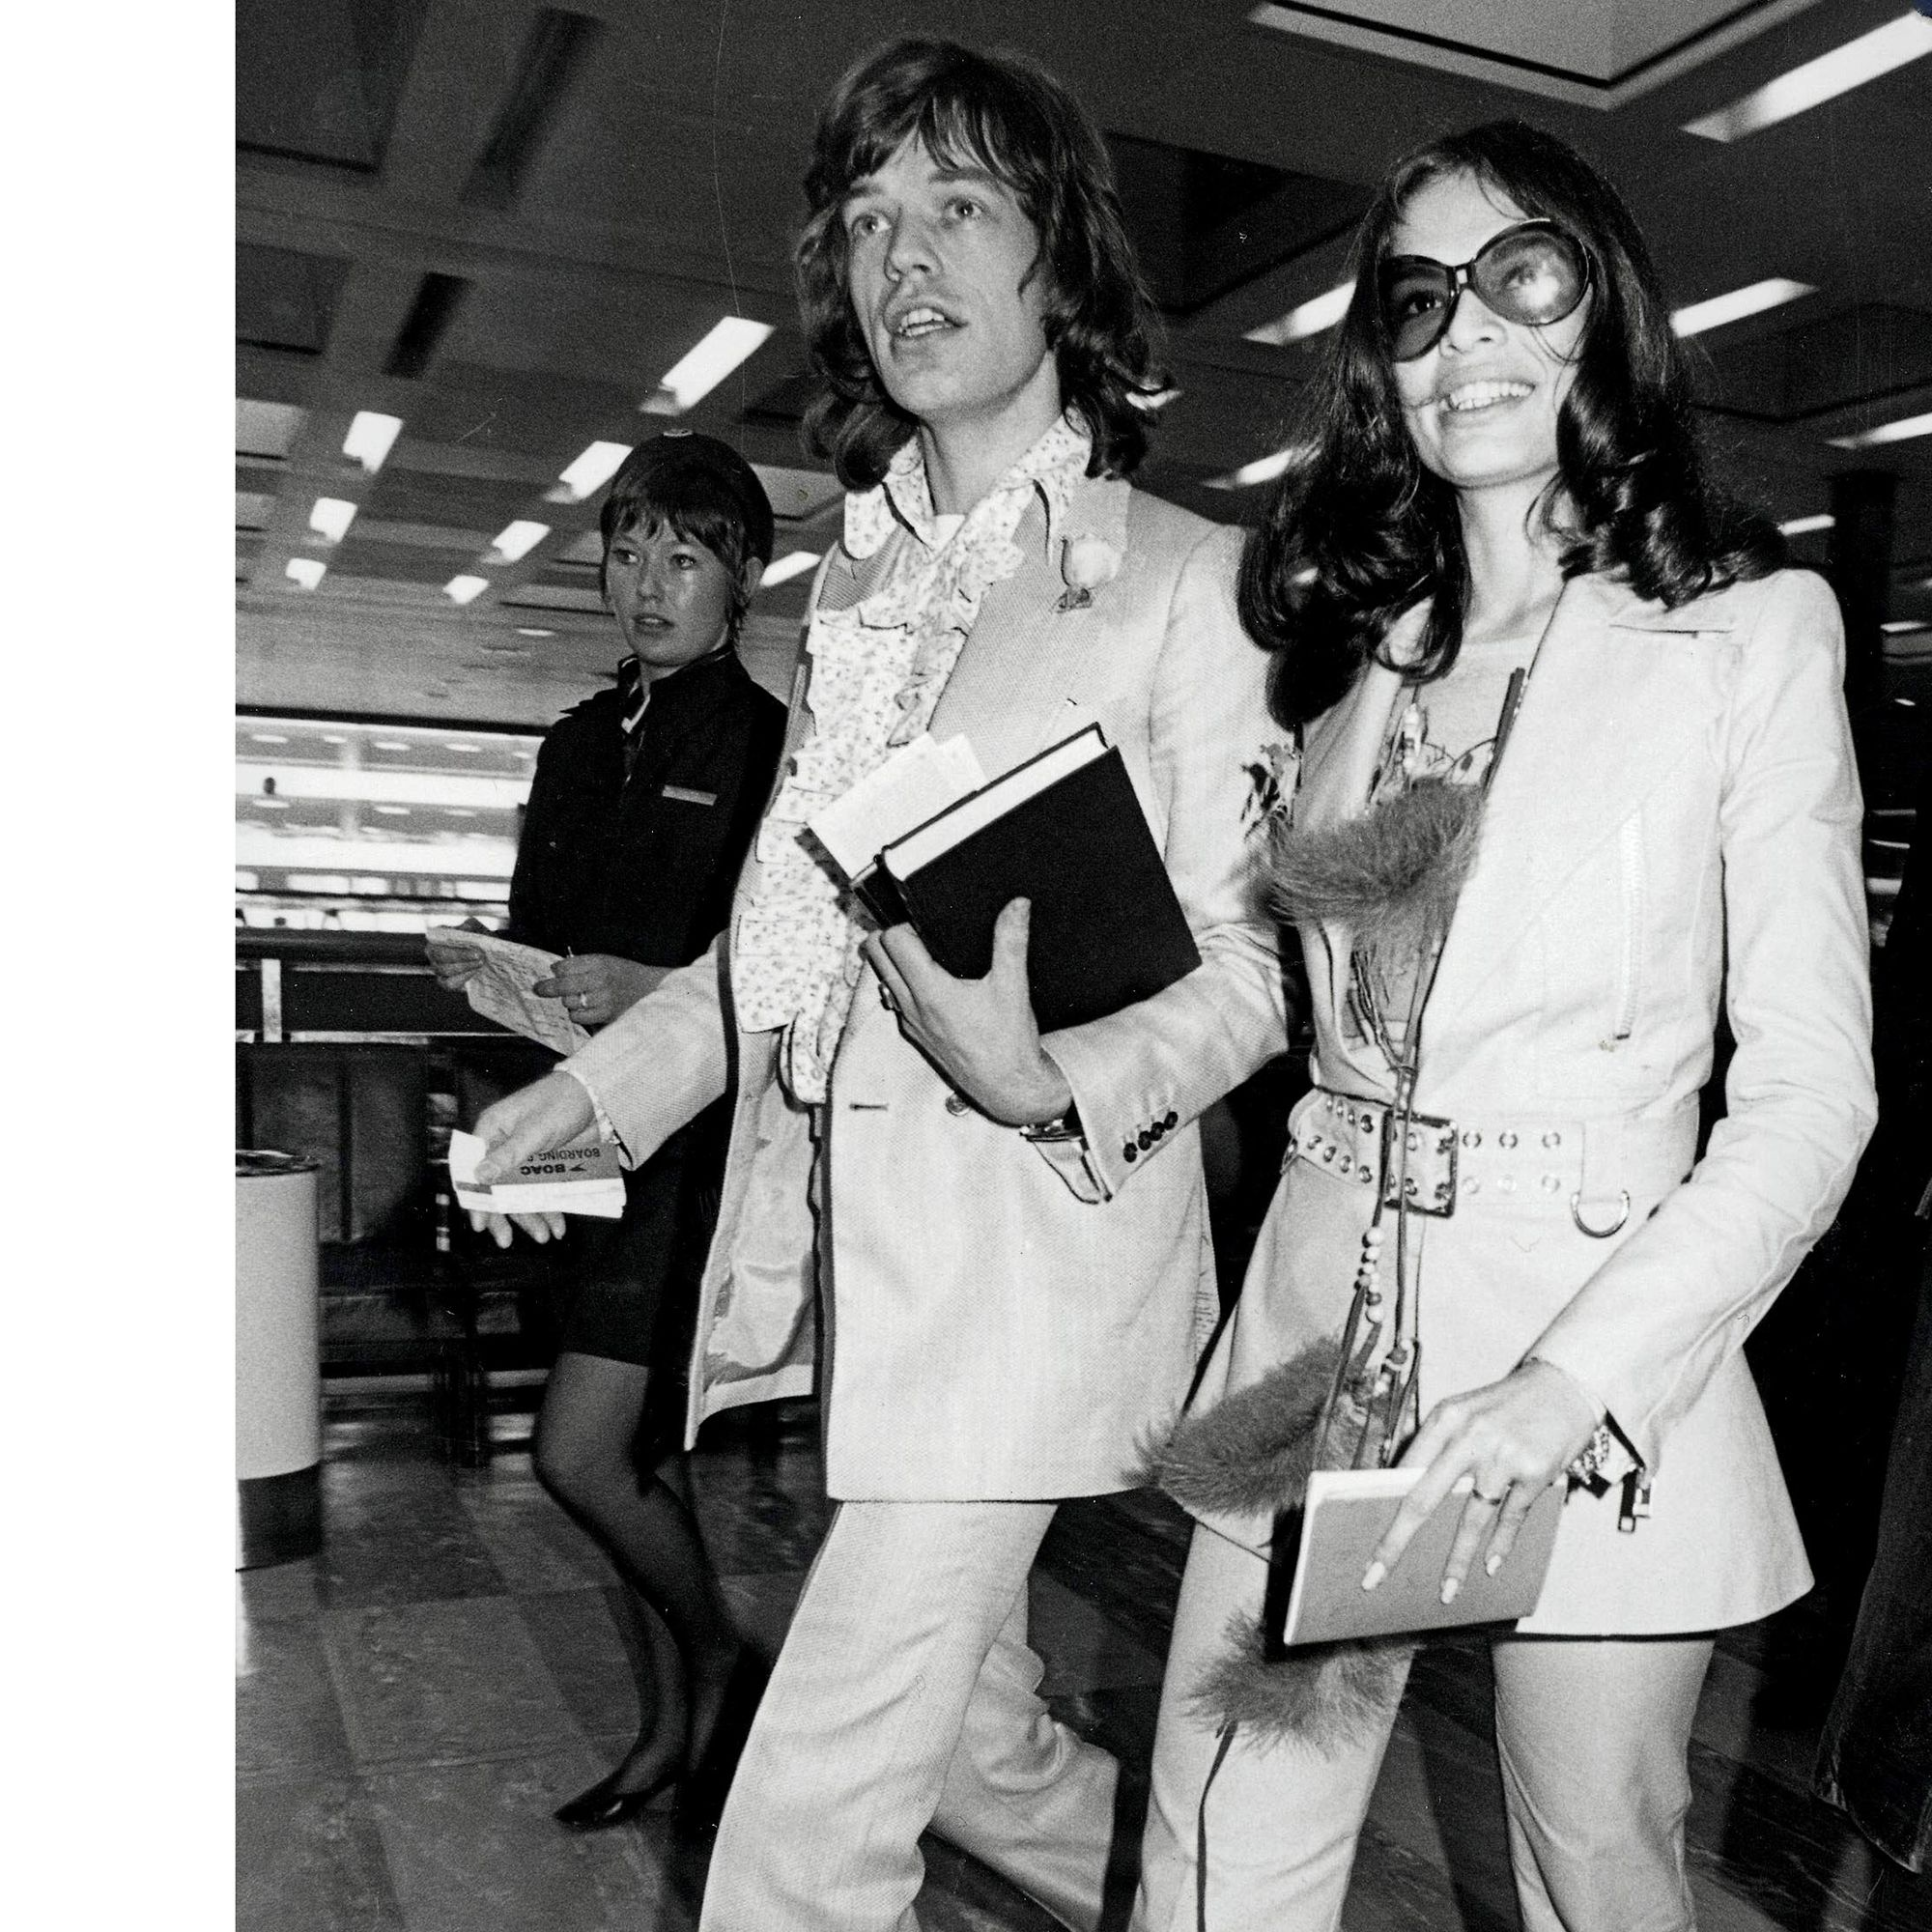 Entertainment, Music, Heathrow Airport, London, 25th November, 1970, Rolling Stones lead singer Mick jagger stands with his Nicaraguan girlfriend Bianca Perez Moreno De Macias at Heathrow Airport before flying to the Bahamas for their holiday  (Photo by Bentley Archive/Popperfoto/Getty Images)